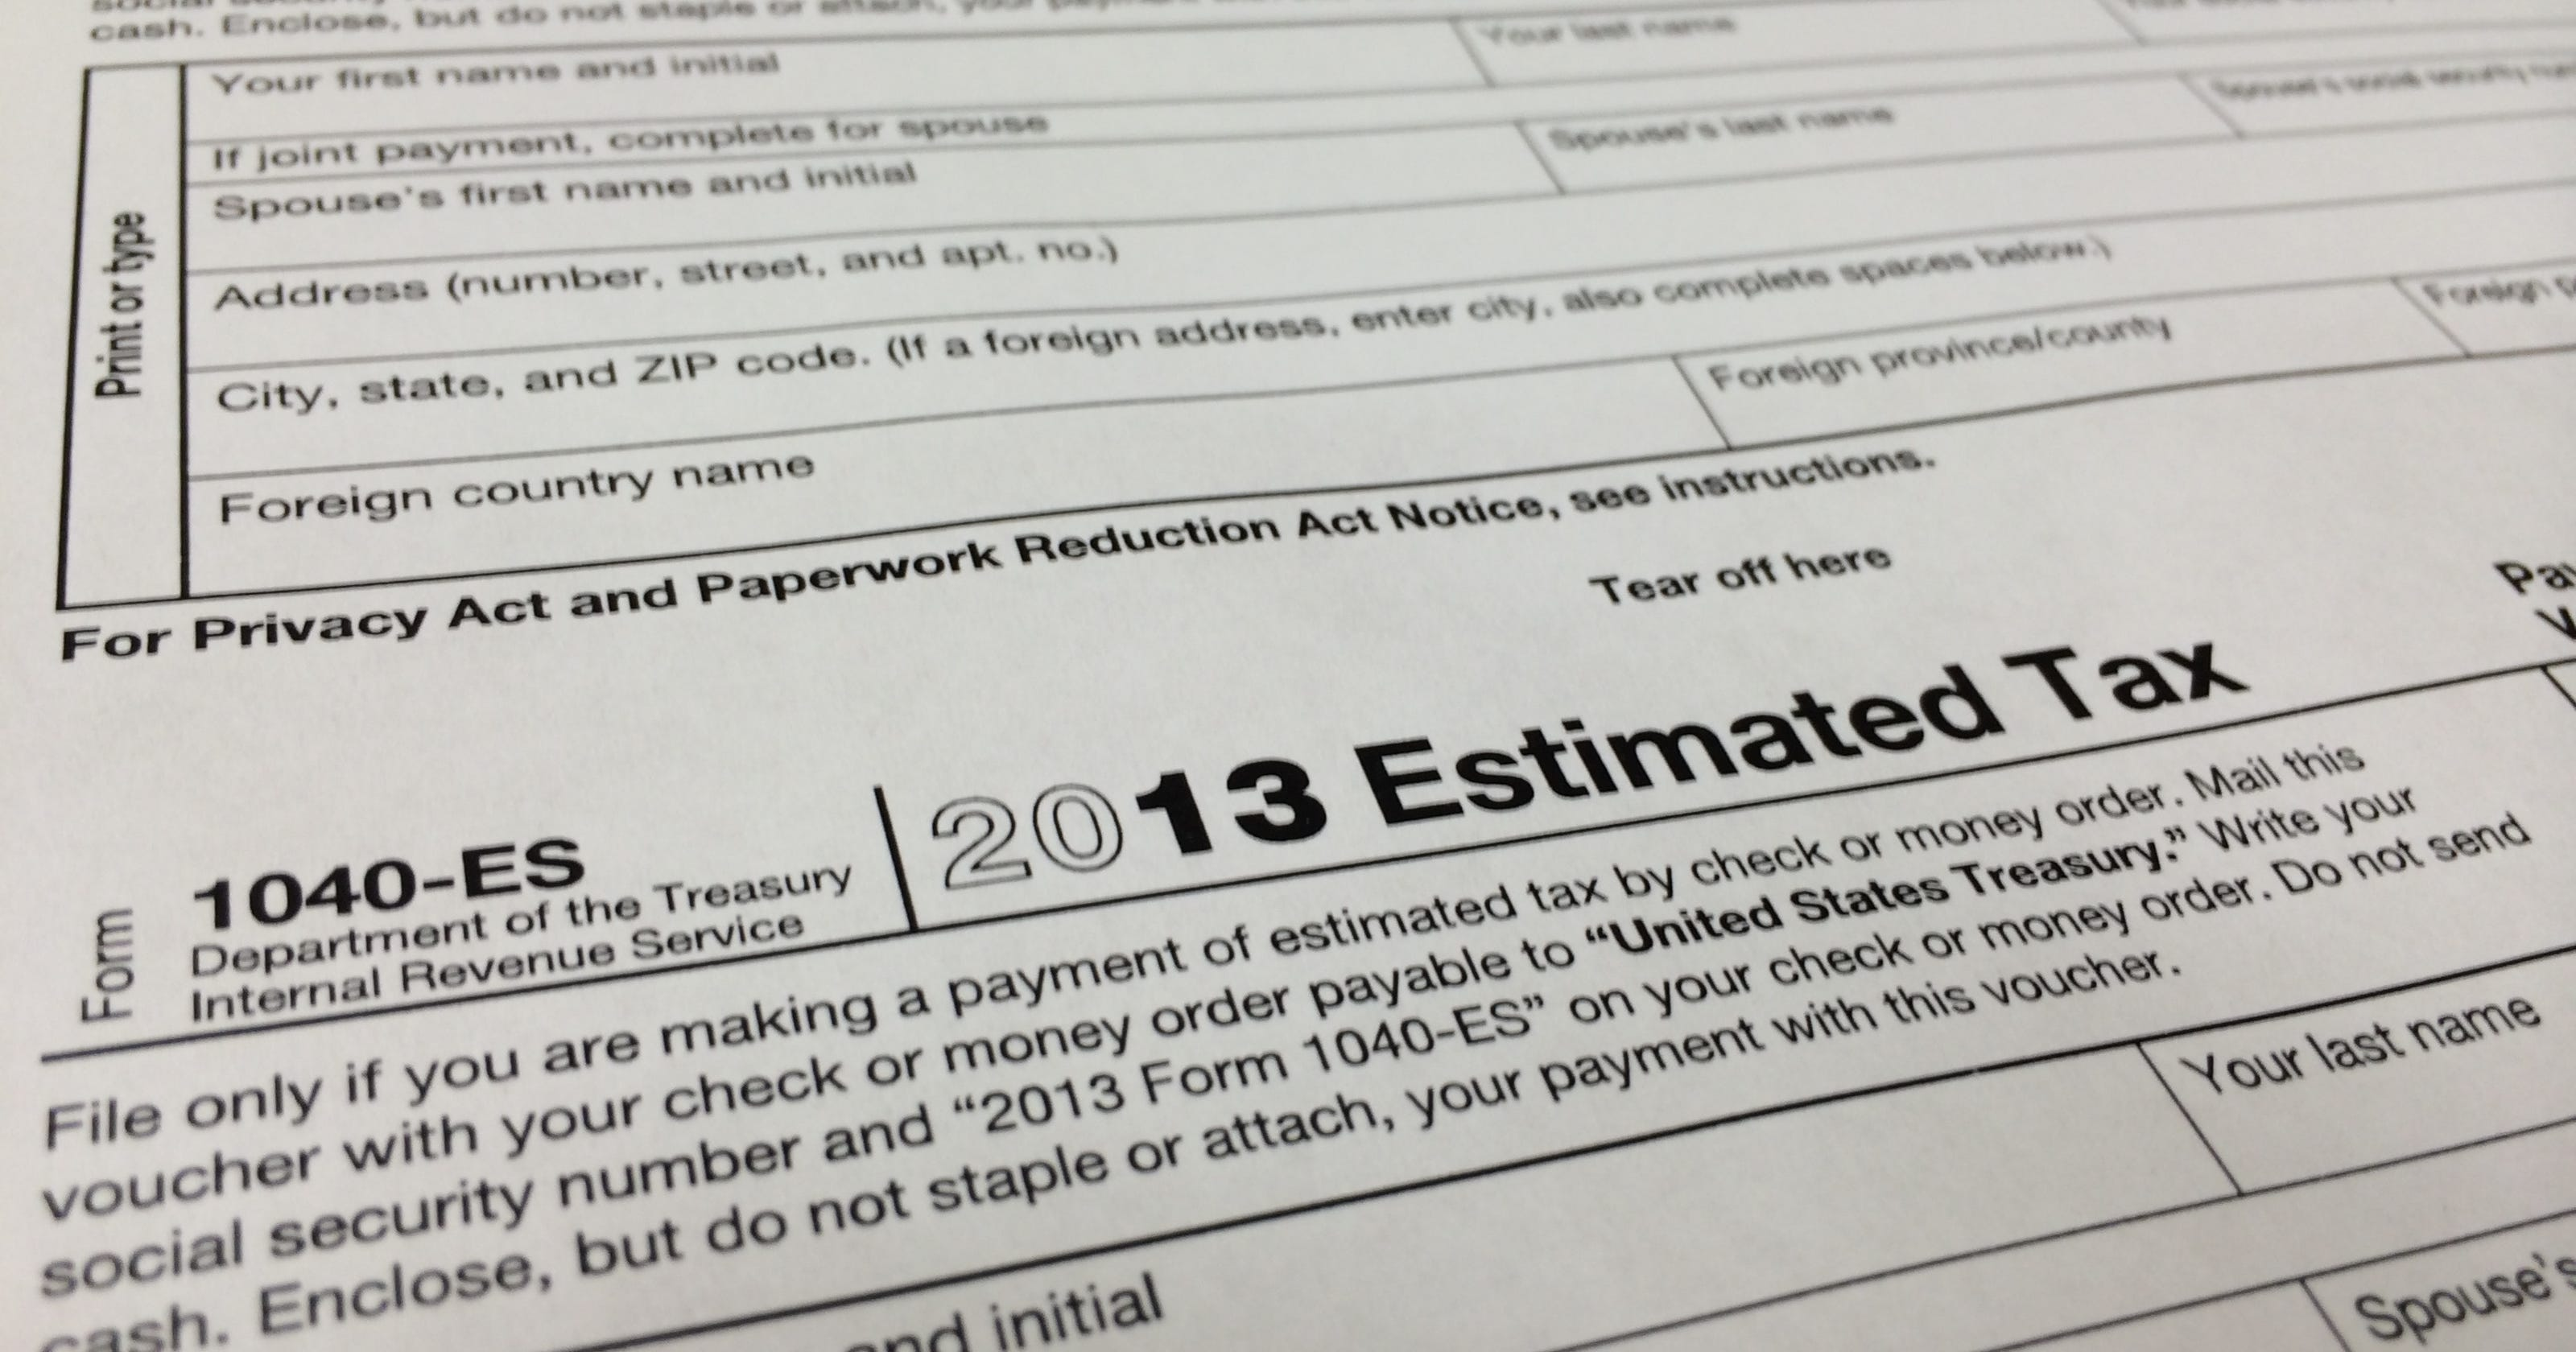 Irs Penalizes More Earners For Mistakes Underpayment In Estimated